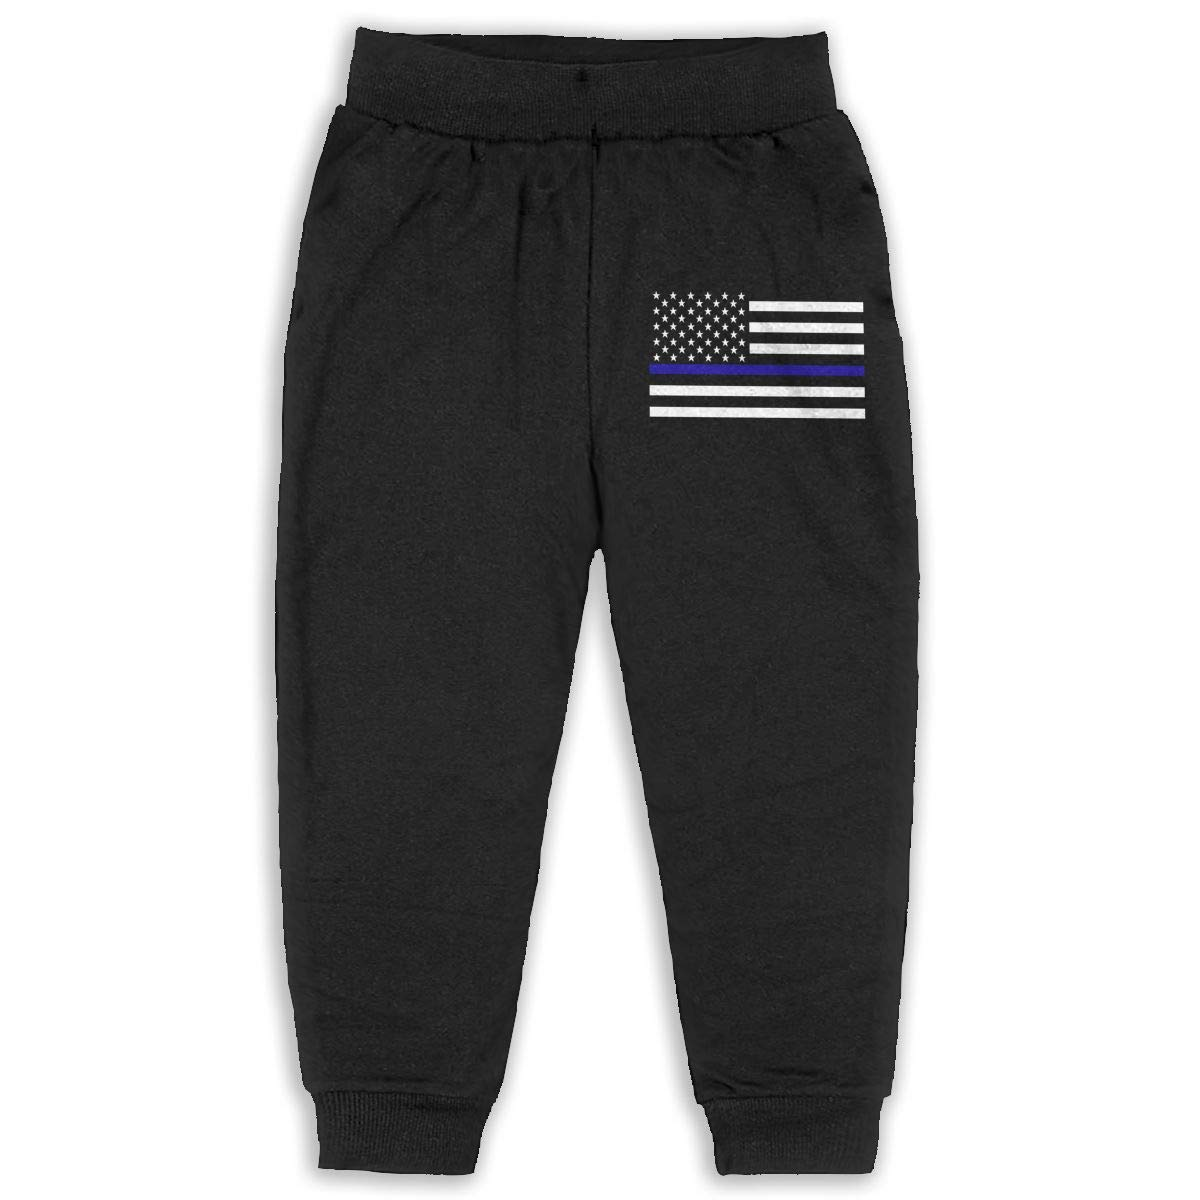 Never-Cold Thin Blue Line American Flag Toddler Boys Cotton Sweatpants Elastic Waist Pants for 2T-6T